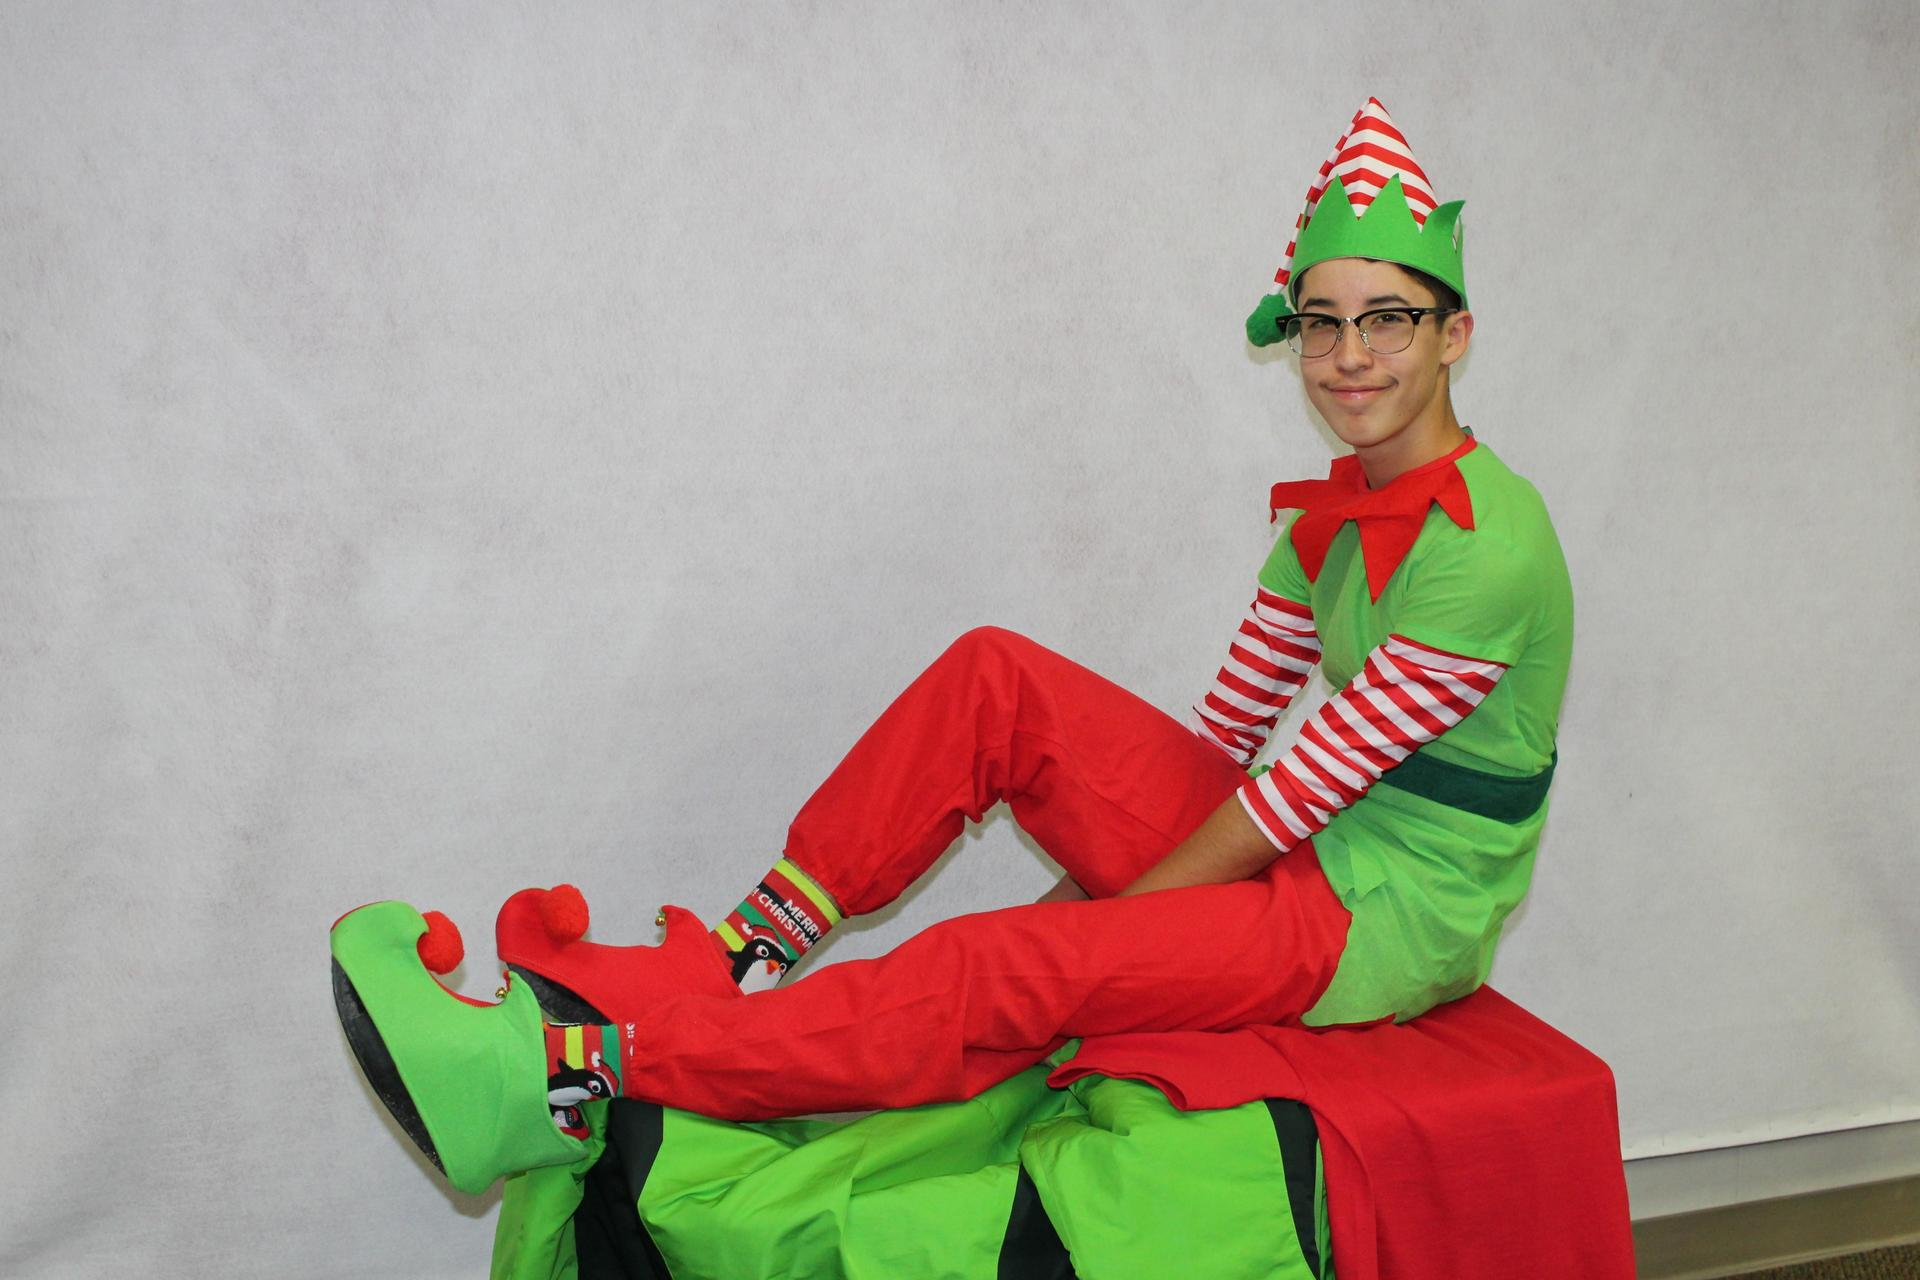 Ryan Diaz poses as one of Santa's helpers